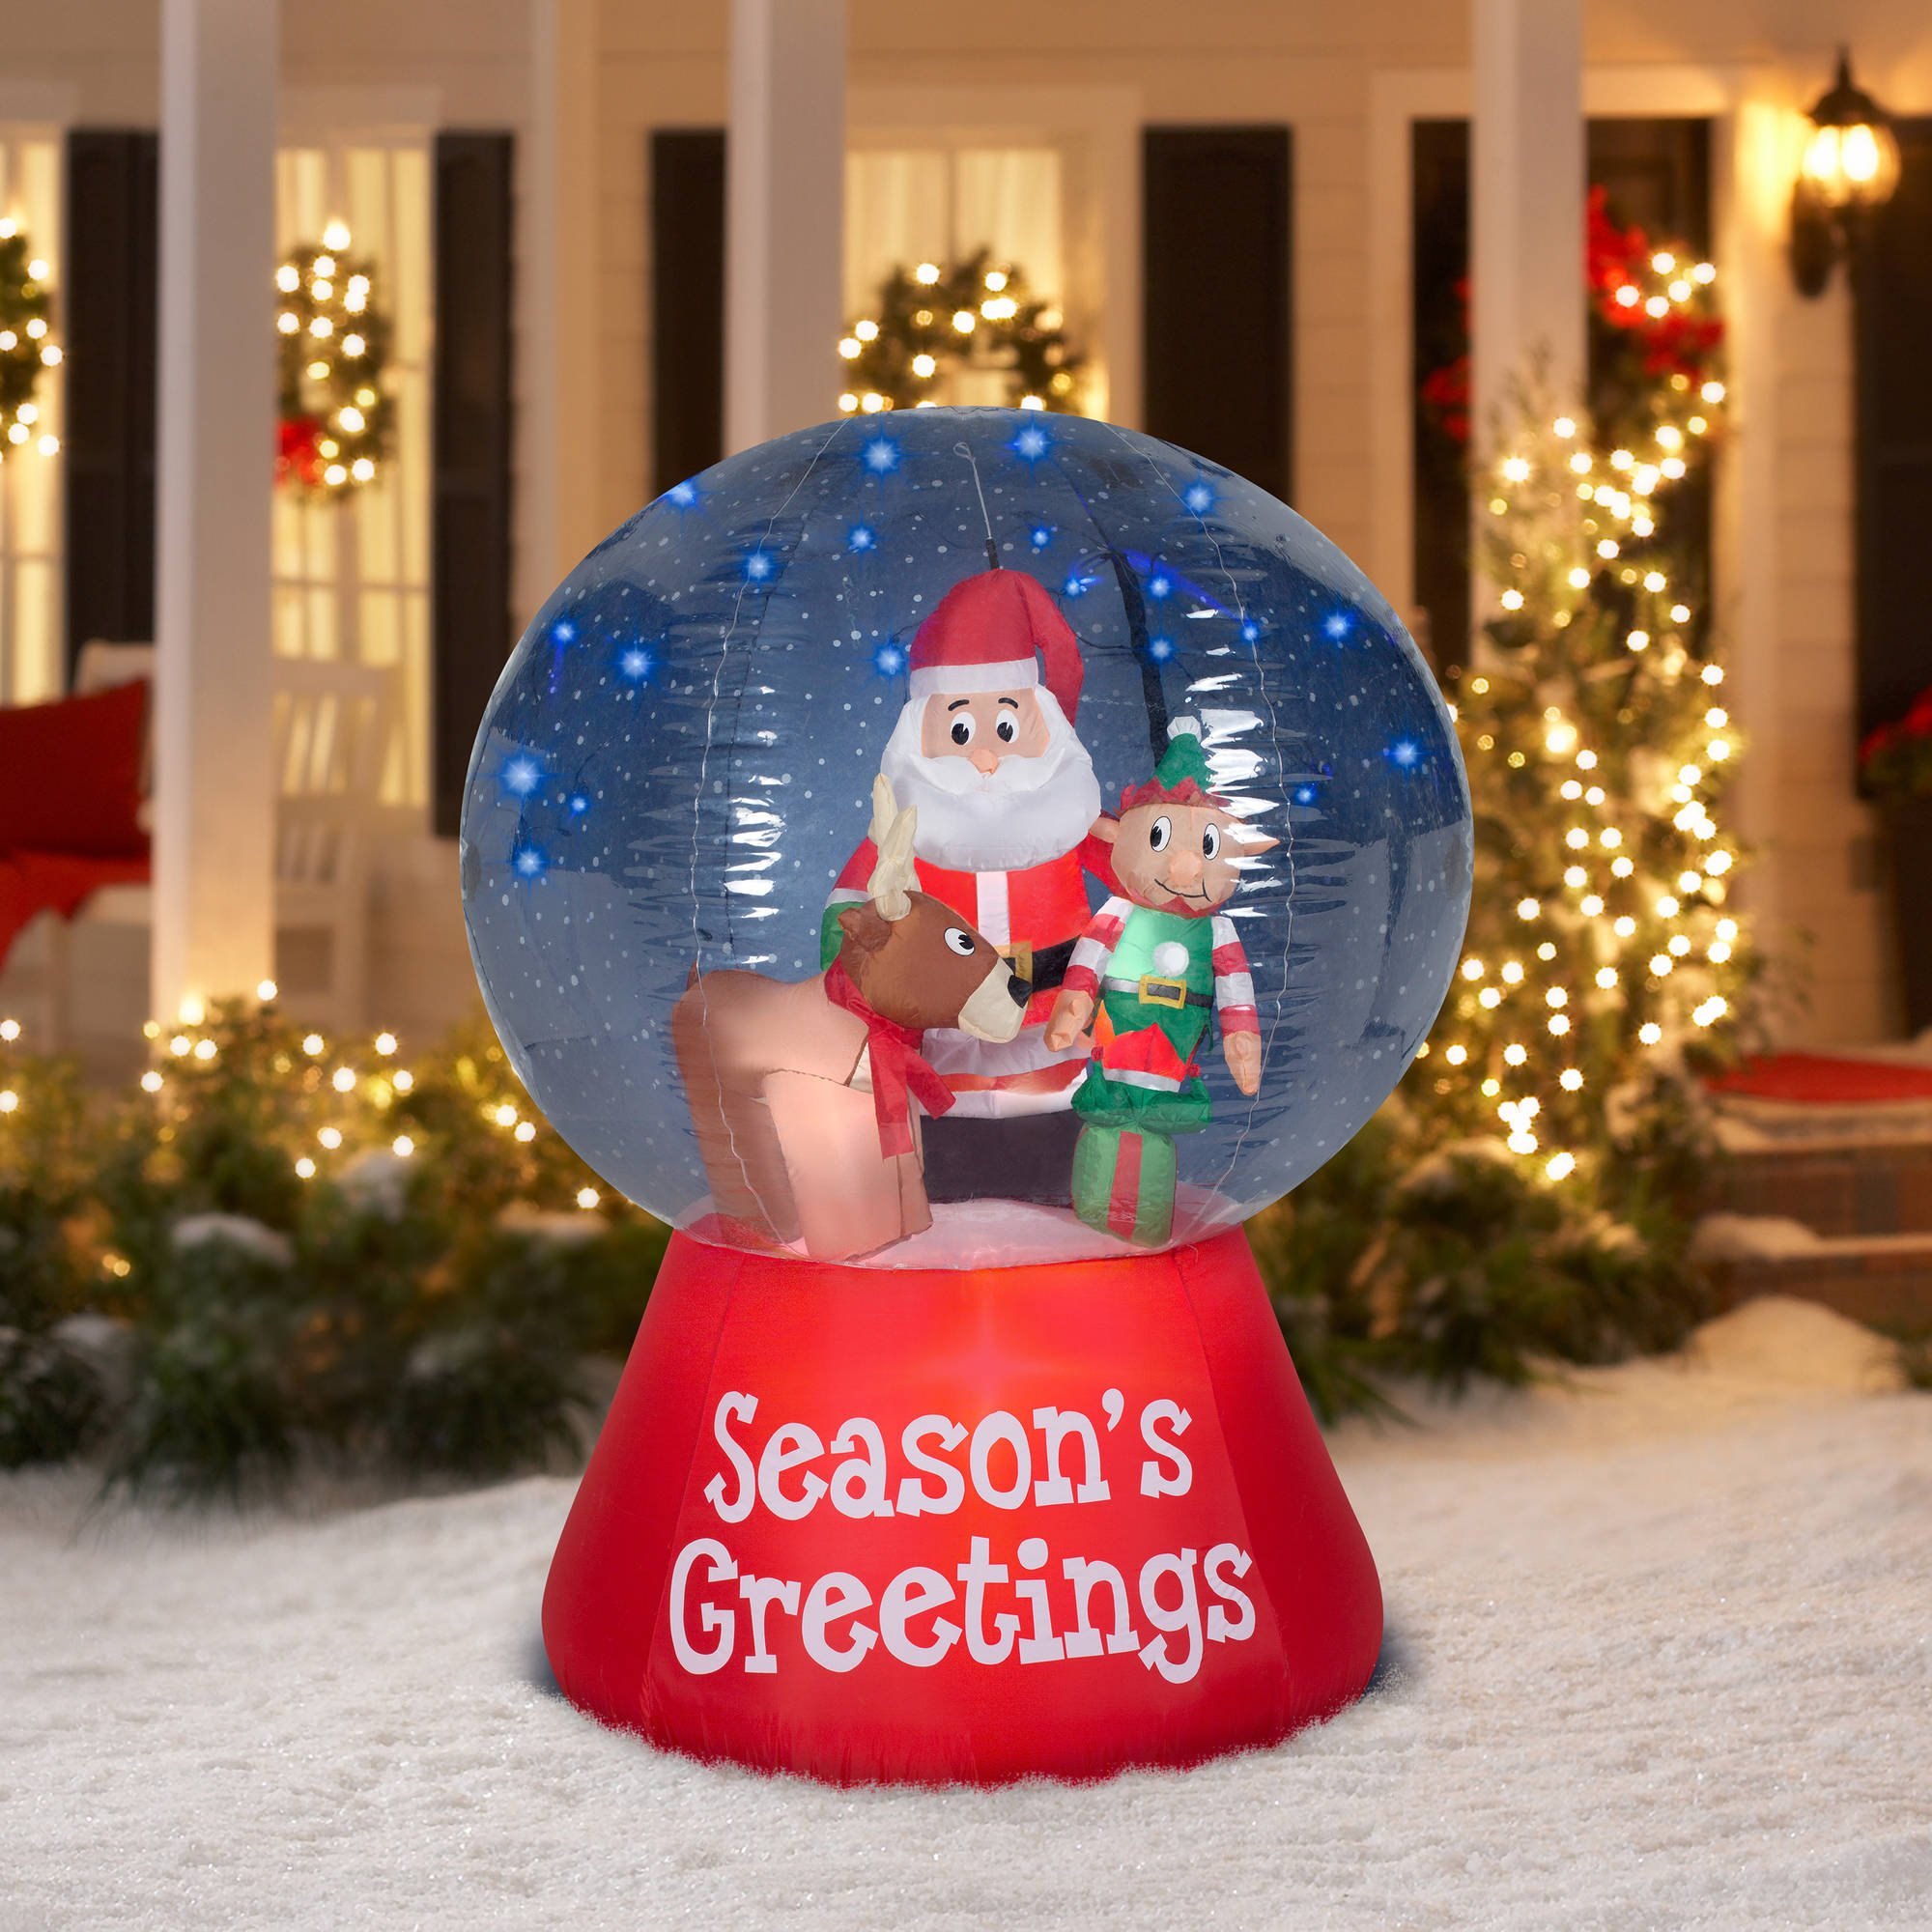 one of the faster selling animated outdoor christmas decorations still remains the large snow globes filled with various scenes - Where To Find Outdoor Christmas Decorations